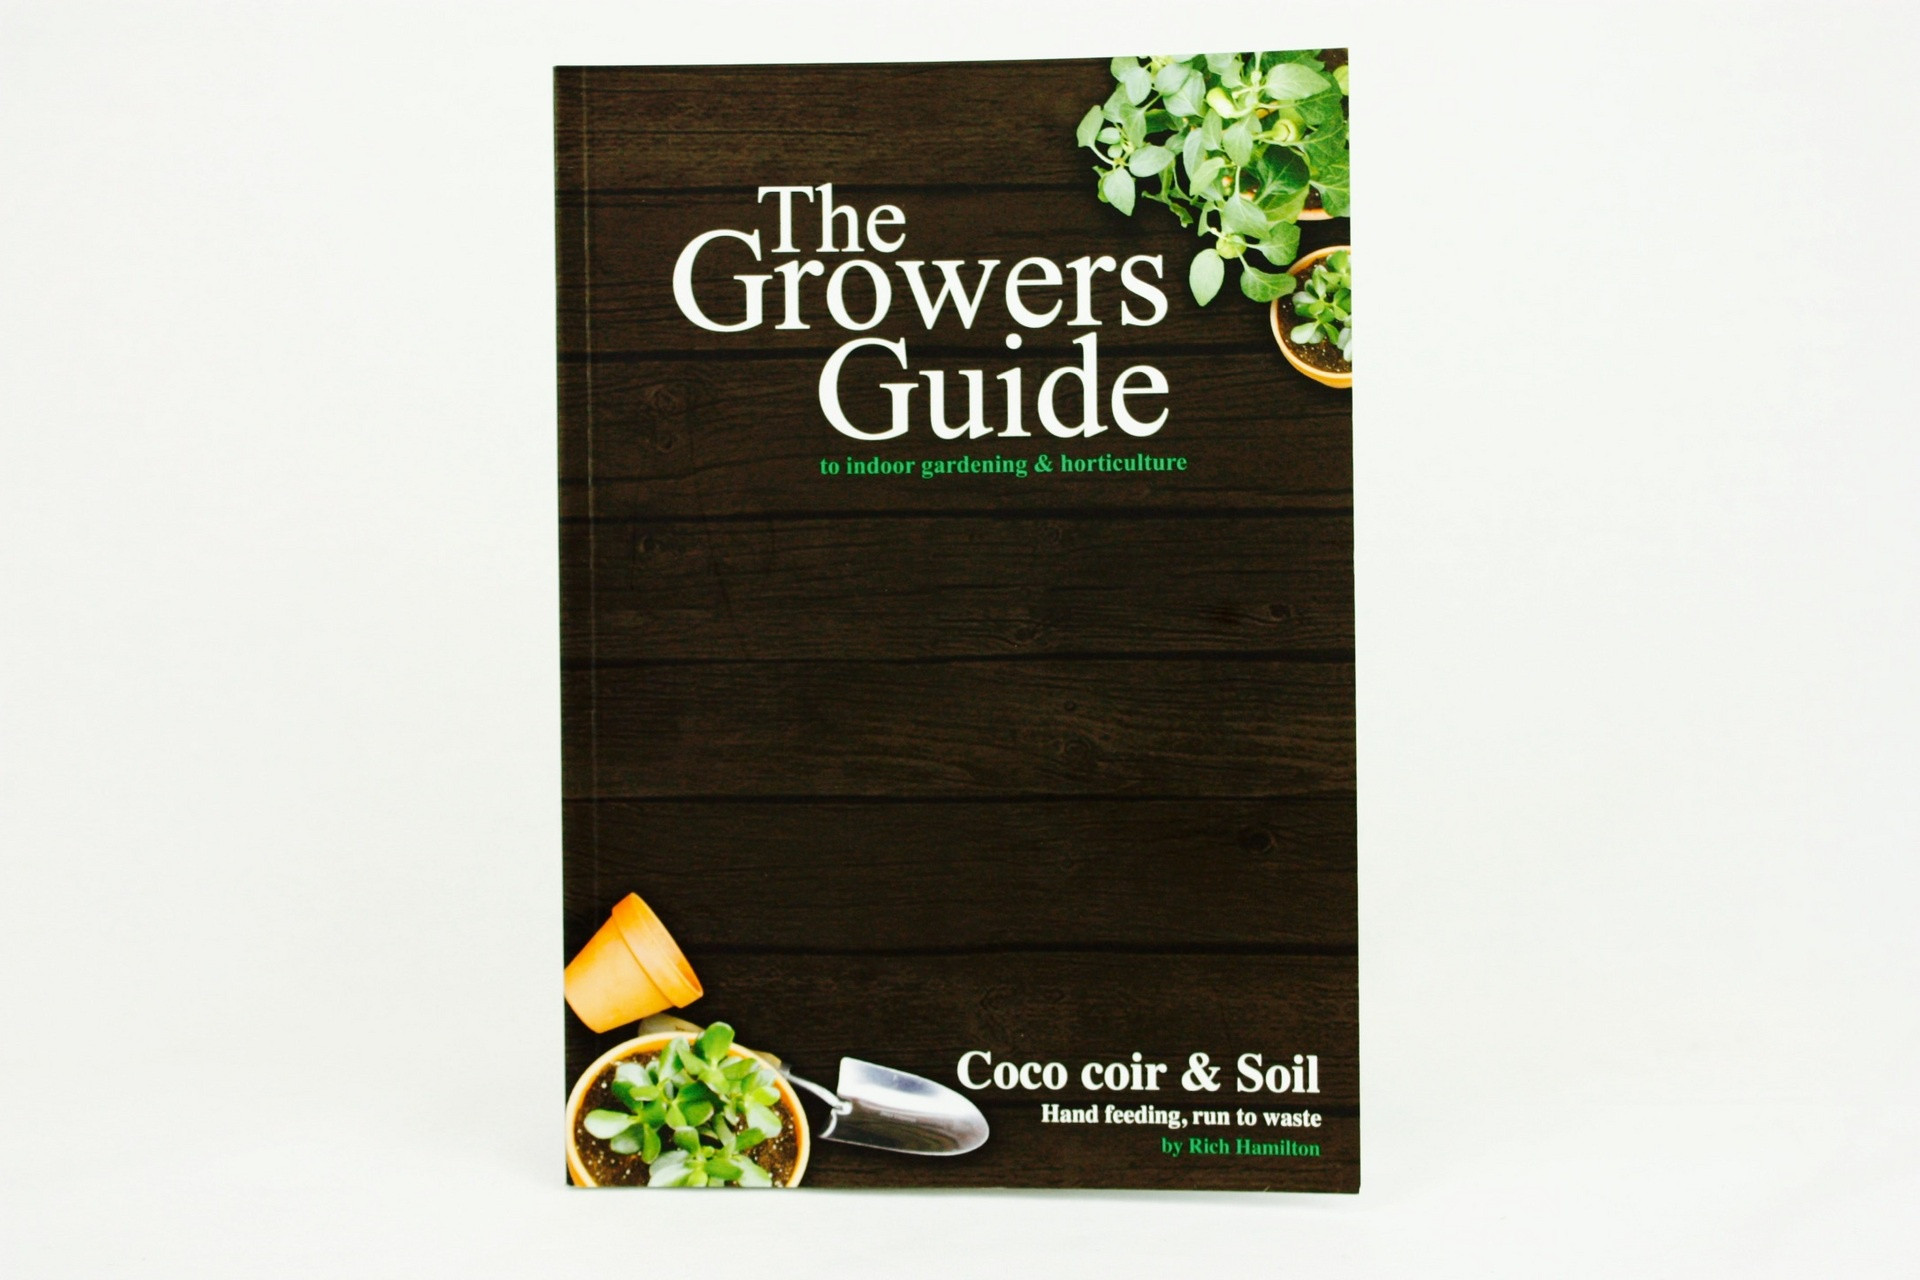 THE GROWERS GUIDE TO COCO COIR & SOIL